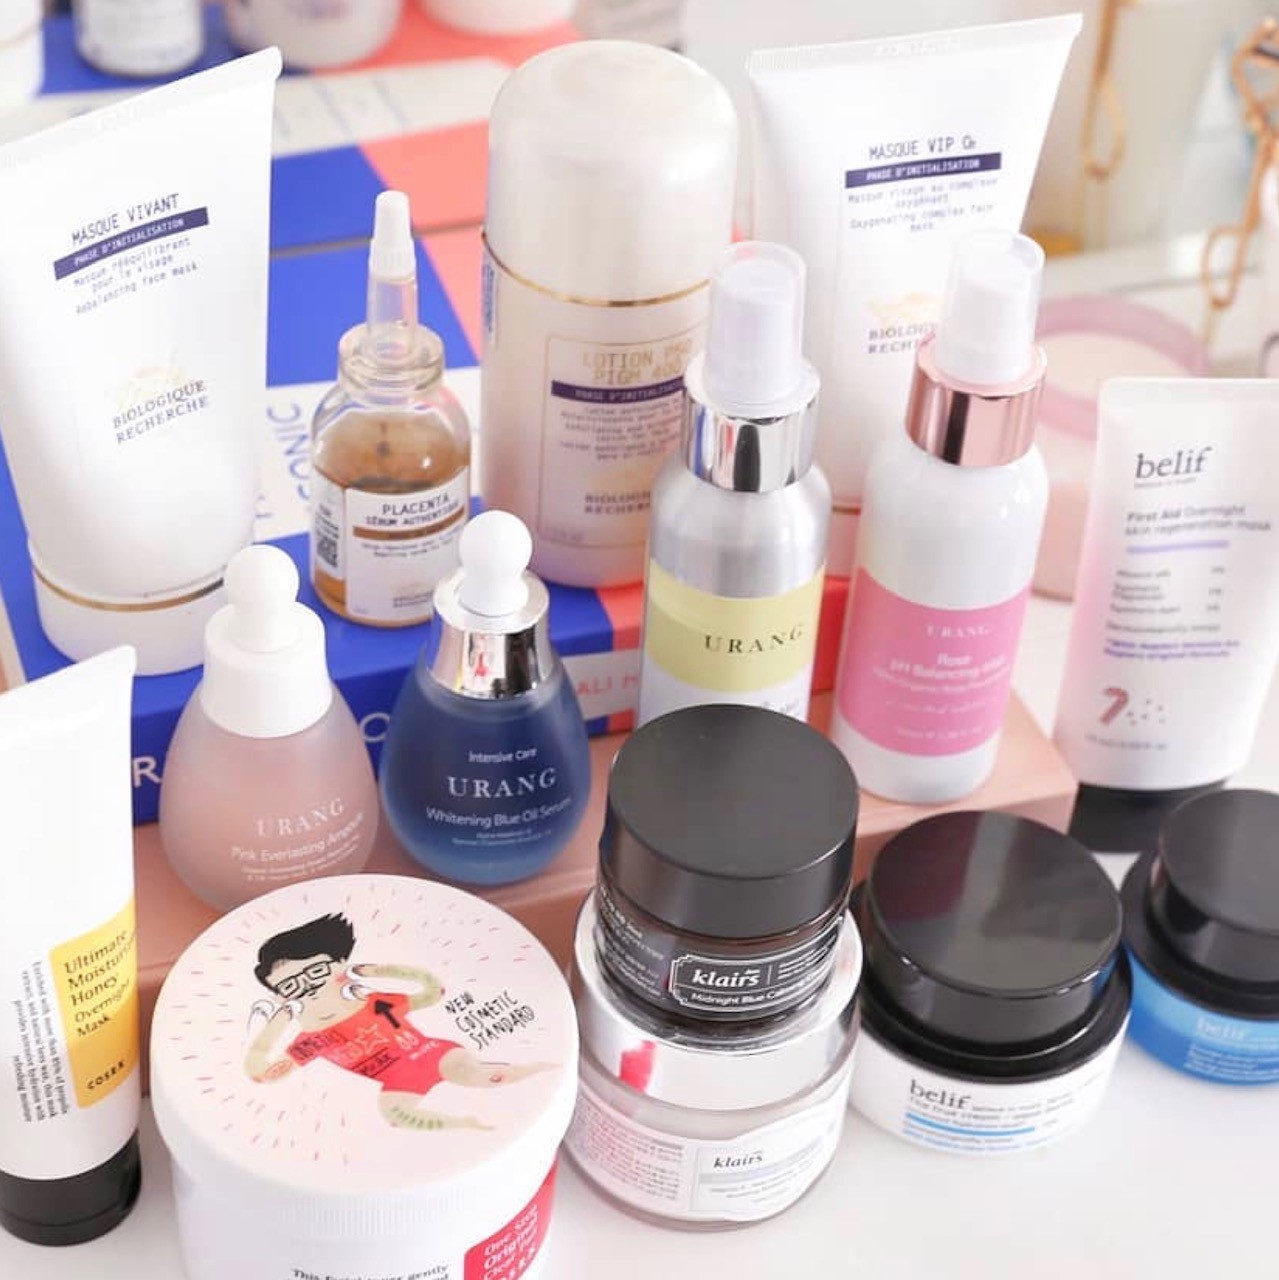 Korean skincare: journey into discovering k-beauty